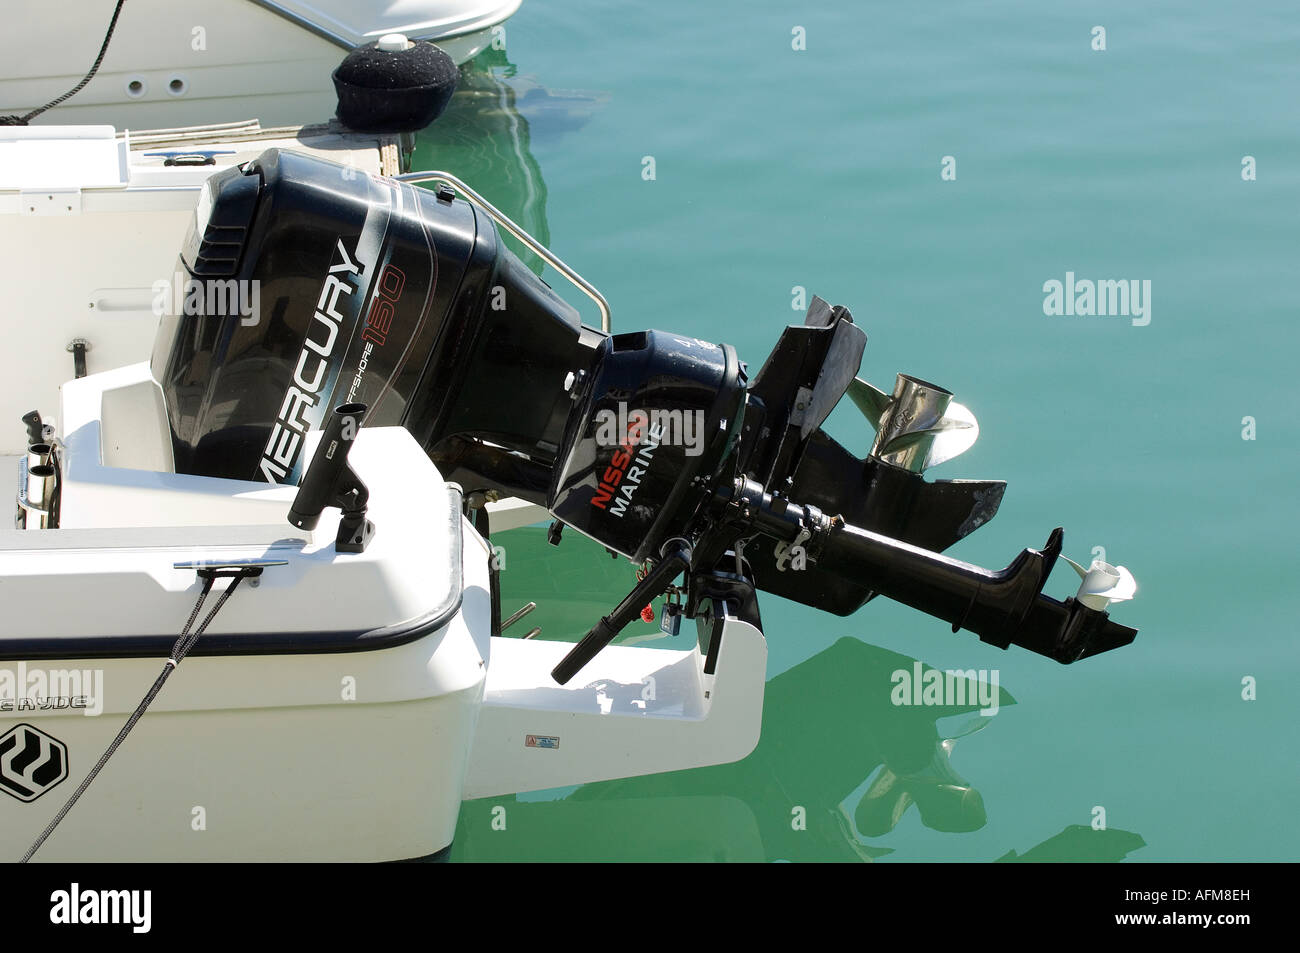 it is take i would forum engines apart nissan outboard the or boat to showthread forward fuel no luck problem tried have there clean with replace in but full filter and gunk gear stroke of img while also